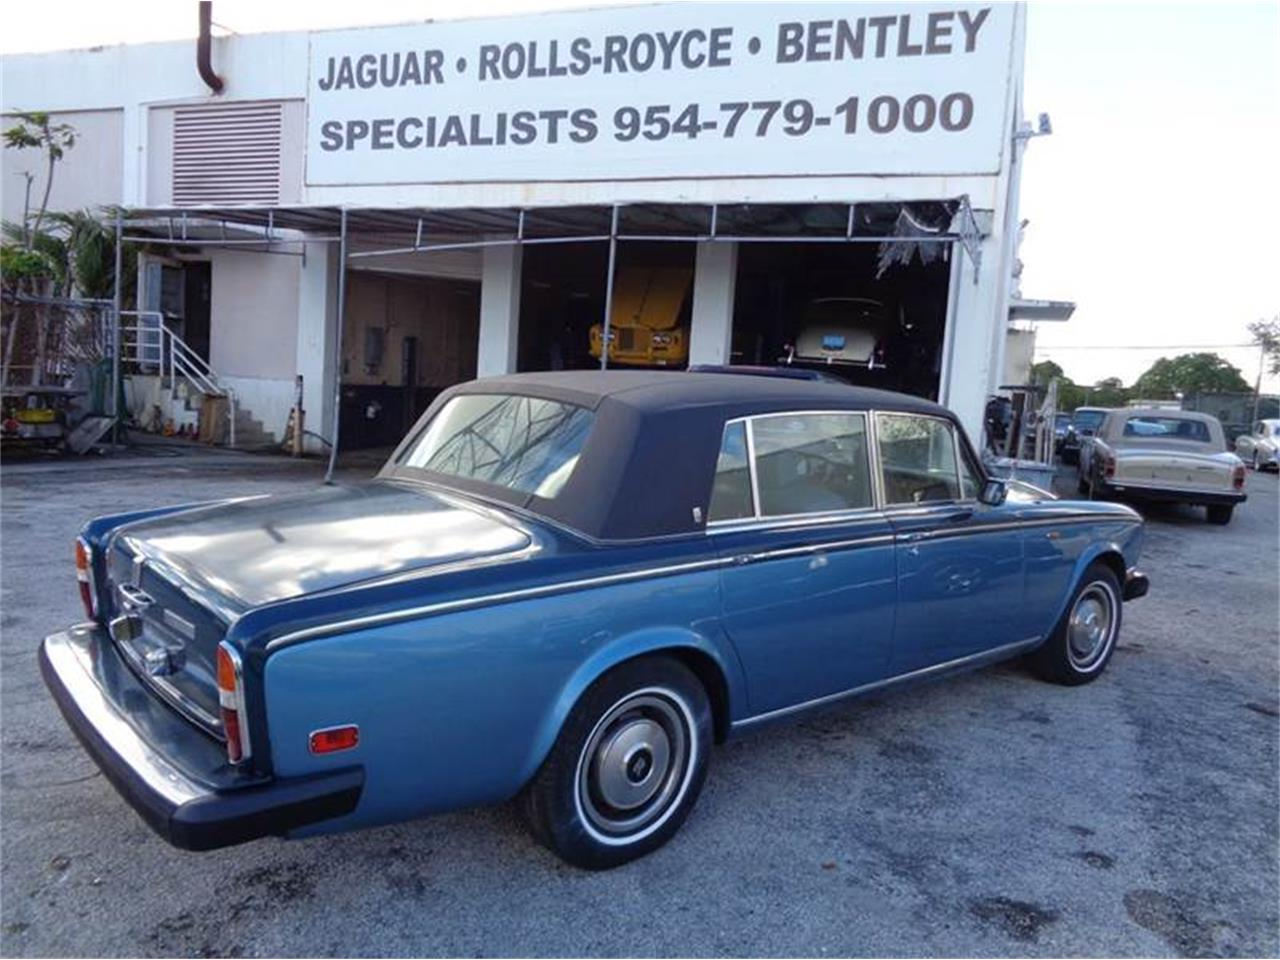 Large Picture of 1980 Rolls-Royce Silver Wraith - $24,950.00 - G503